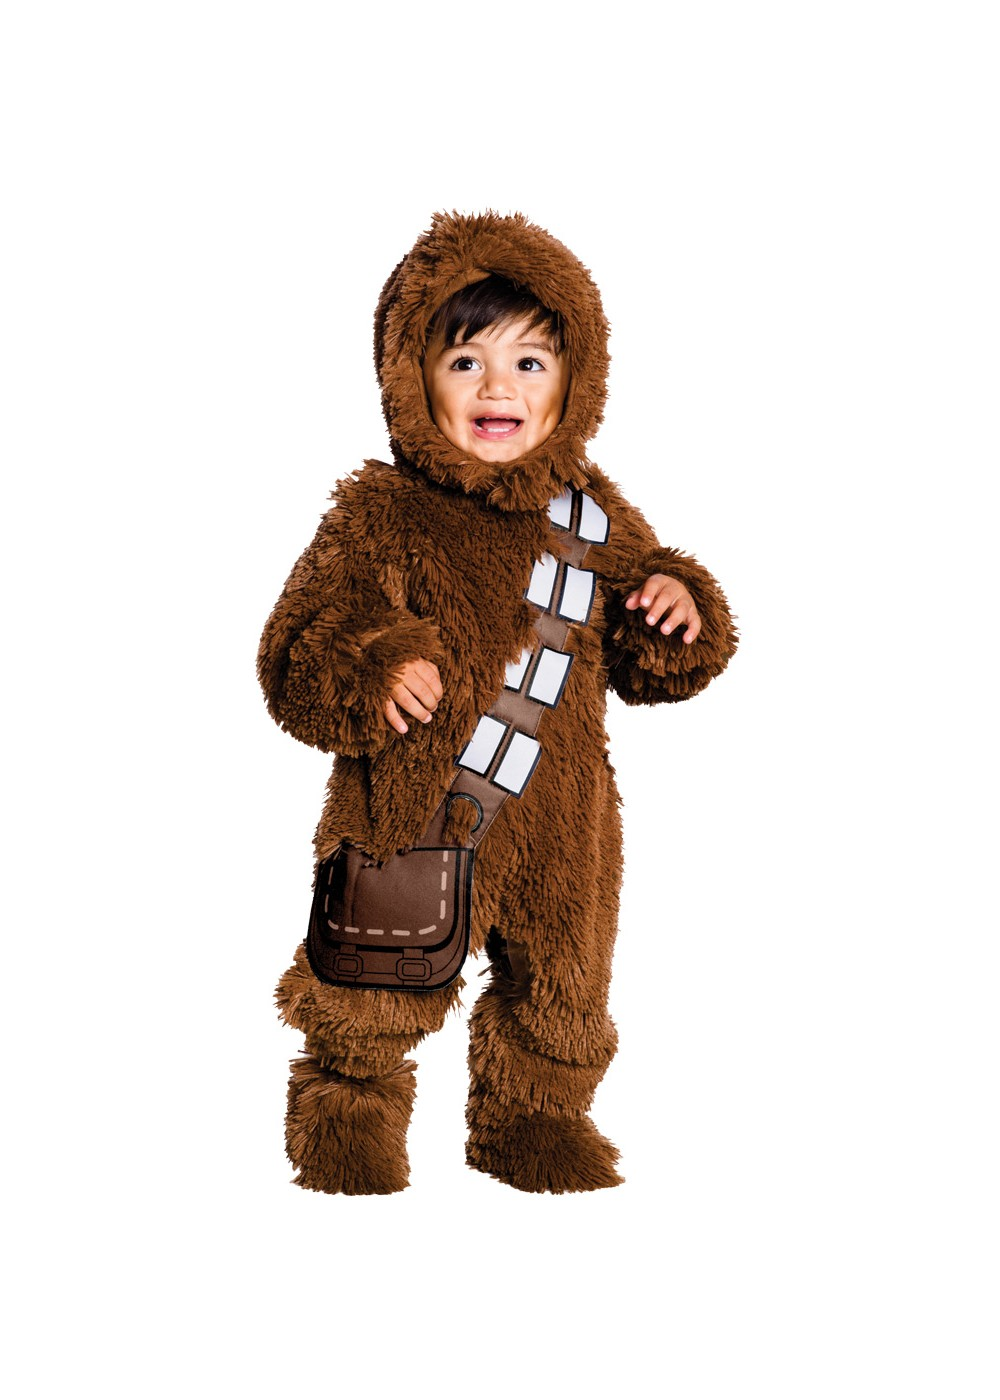 Toddler Chewbacca Plush Costume